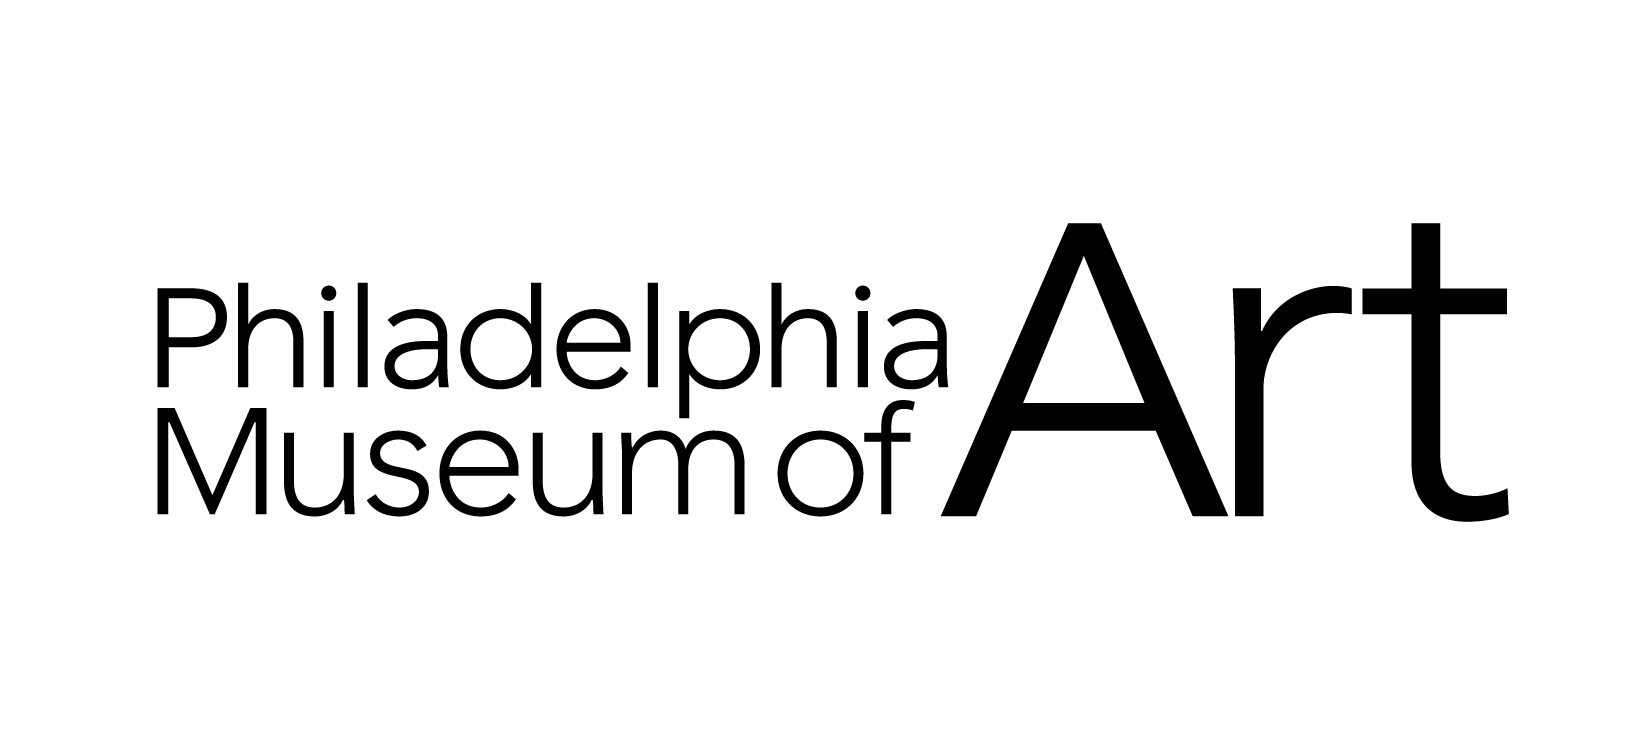 Philadelphia Museum of Art | Our Story